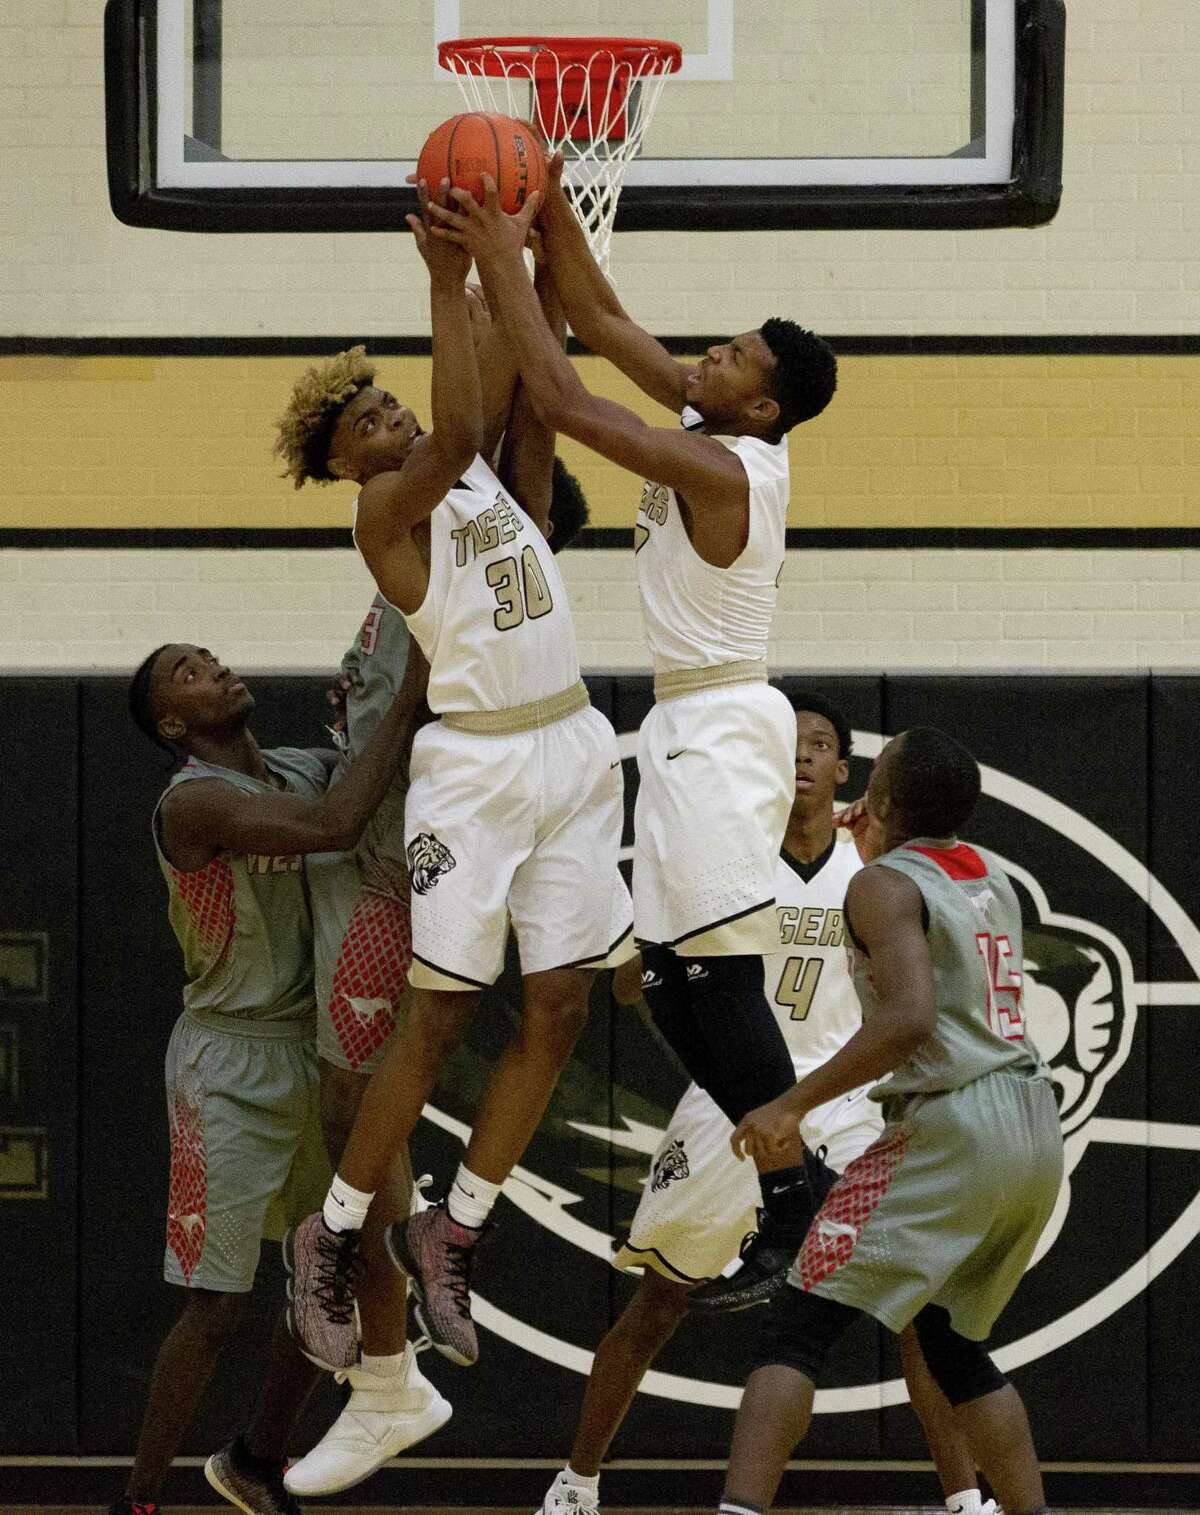 Conroe guards Keith Edmond (30) and Michael Phoenix (3) go for a reobund during the first quarter of a non-district high school basketball game at Conroe High School, Tuesday, Dec. 4, 2018, in Conroe.